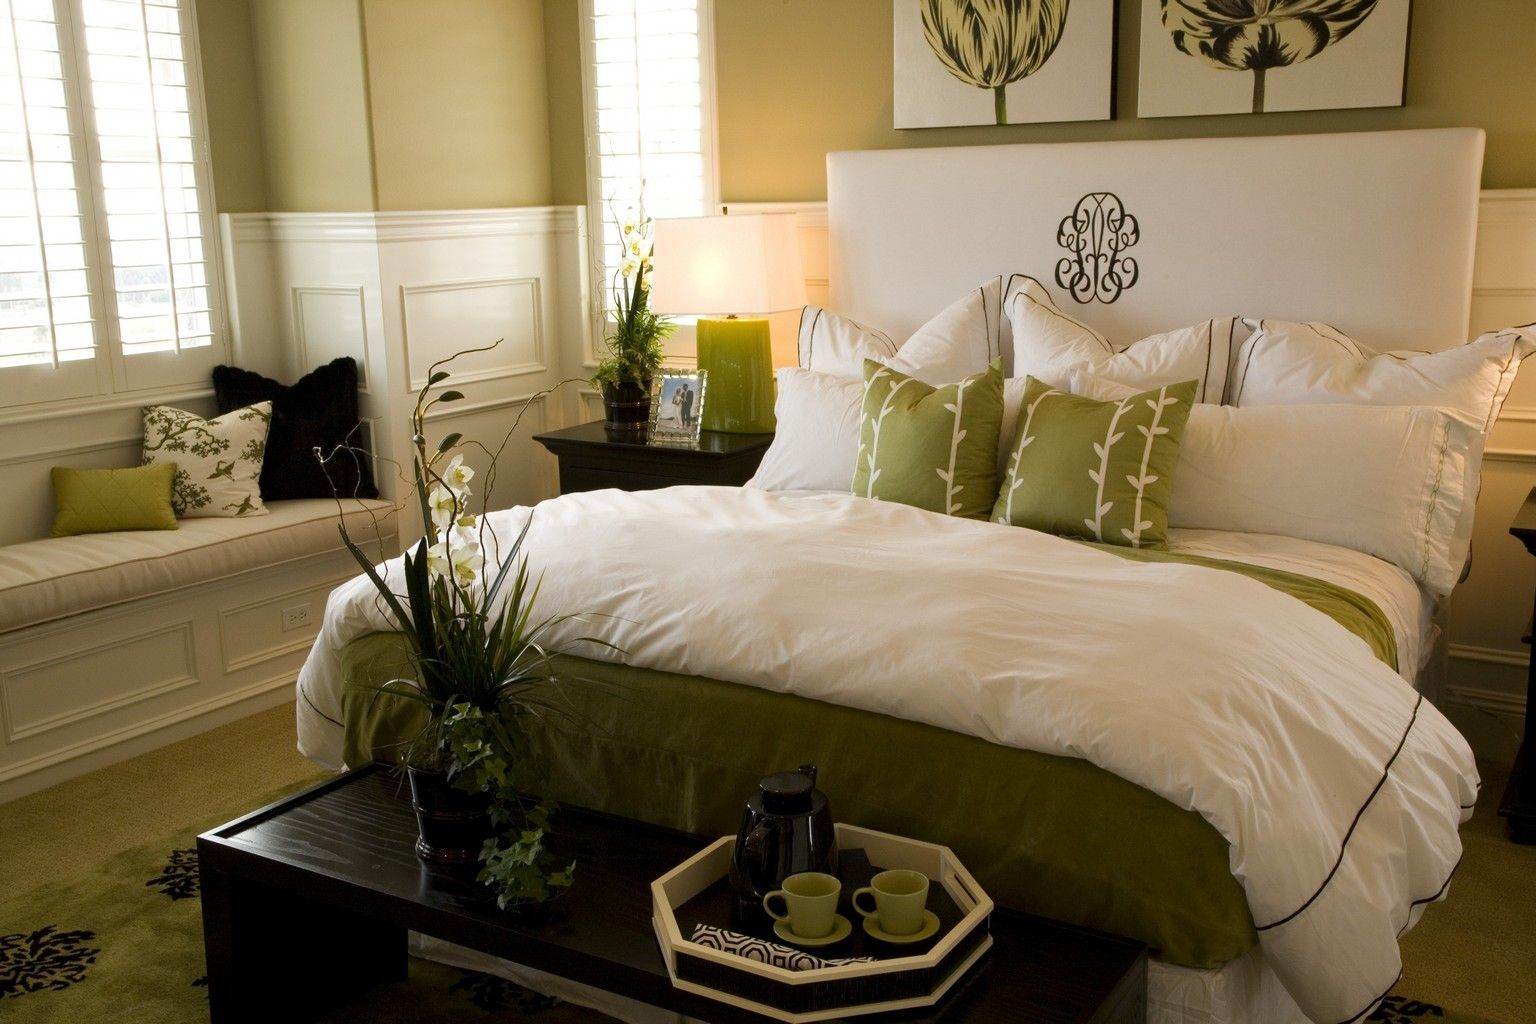 1000 images about feng shui on pinterest gardens herbs garden and bed placement